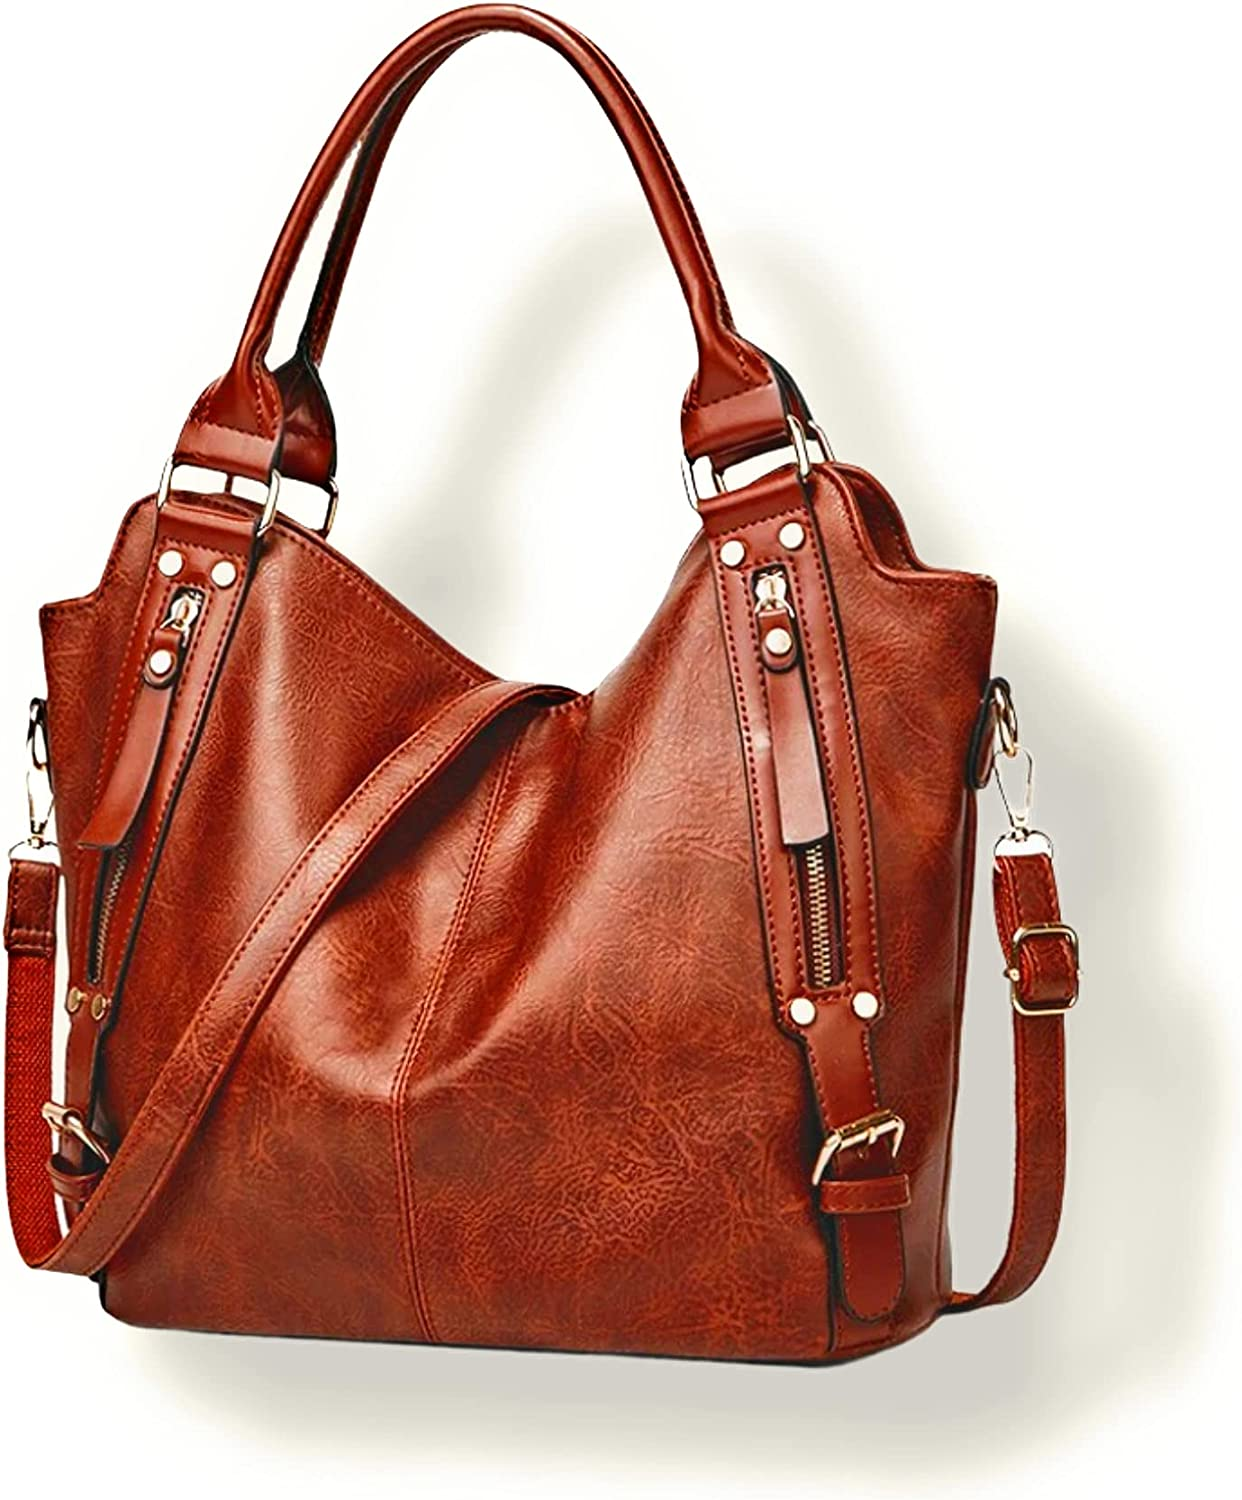 Women's trendy luxury fashion hobo Pu leather shoulder/crossbody handbag size large in different color